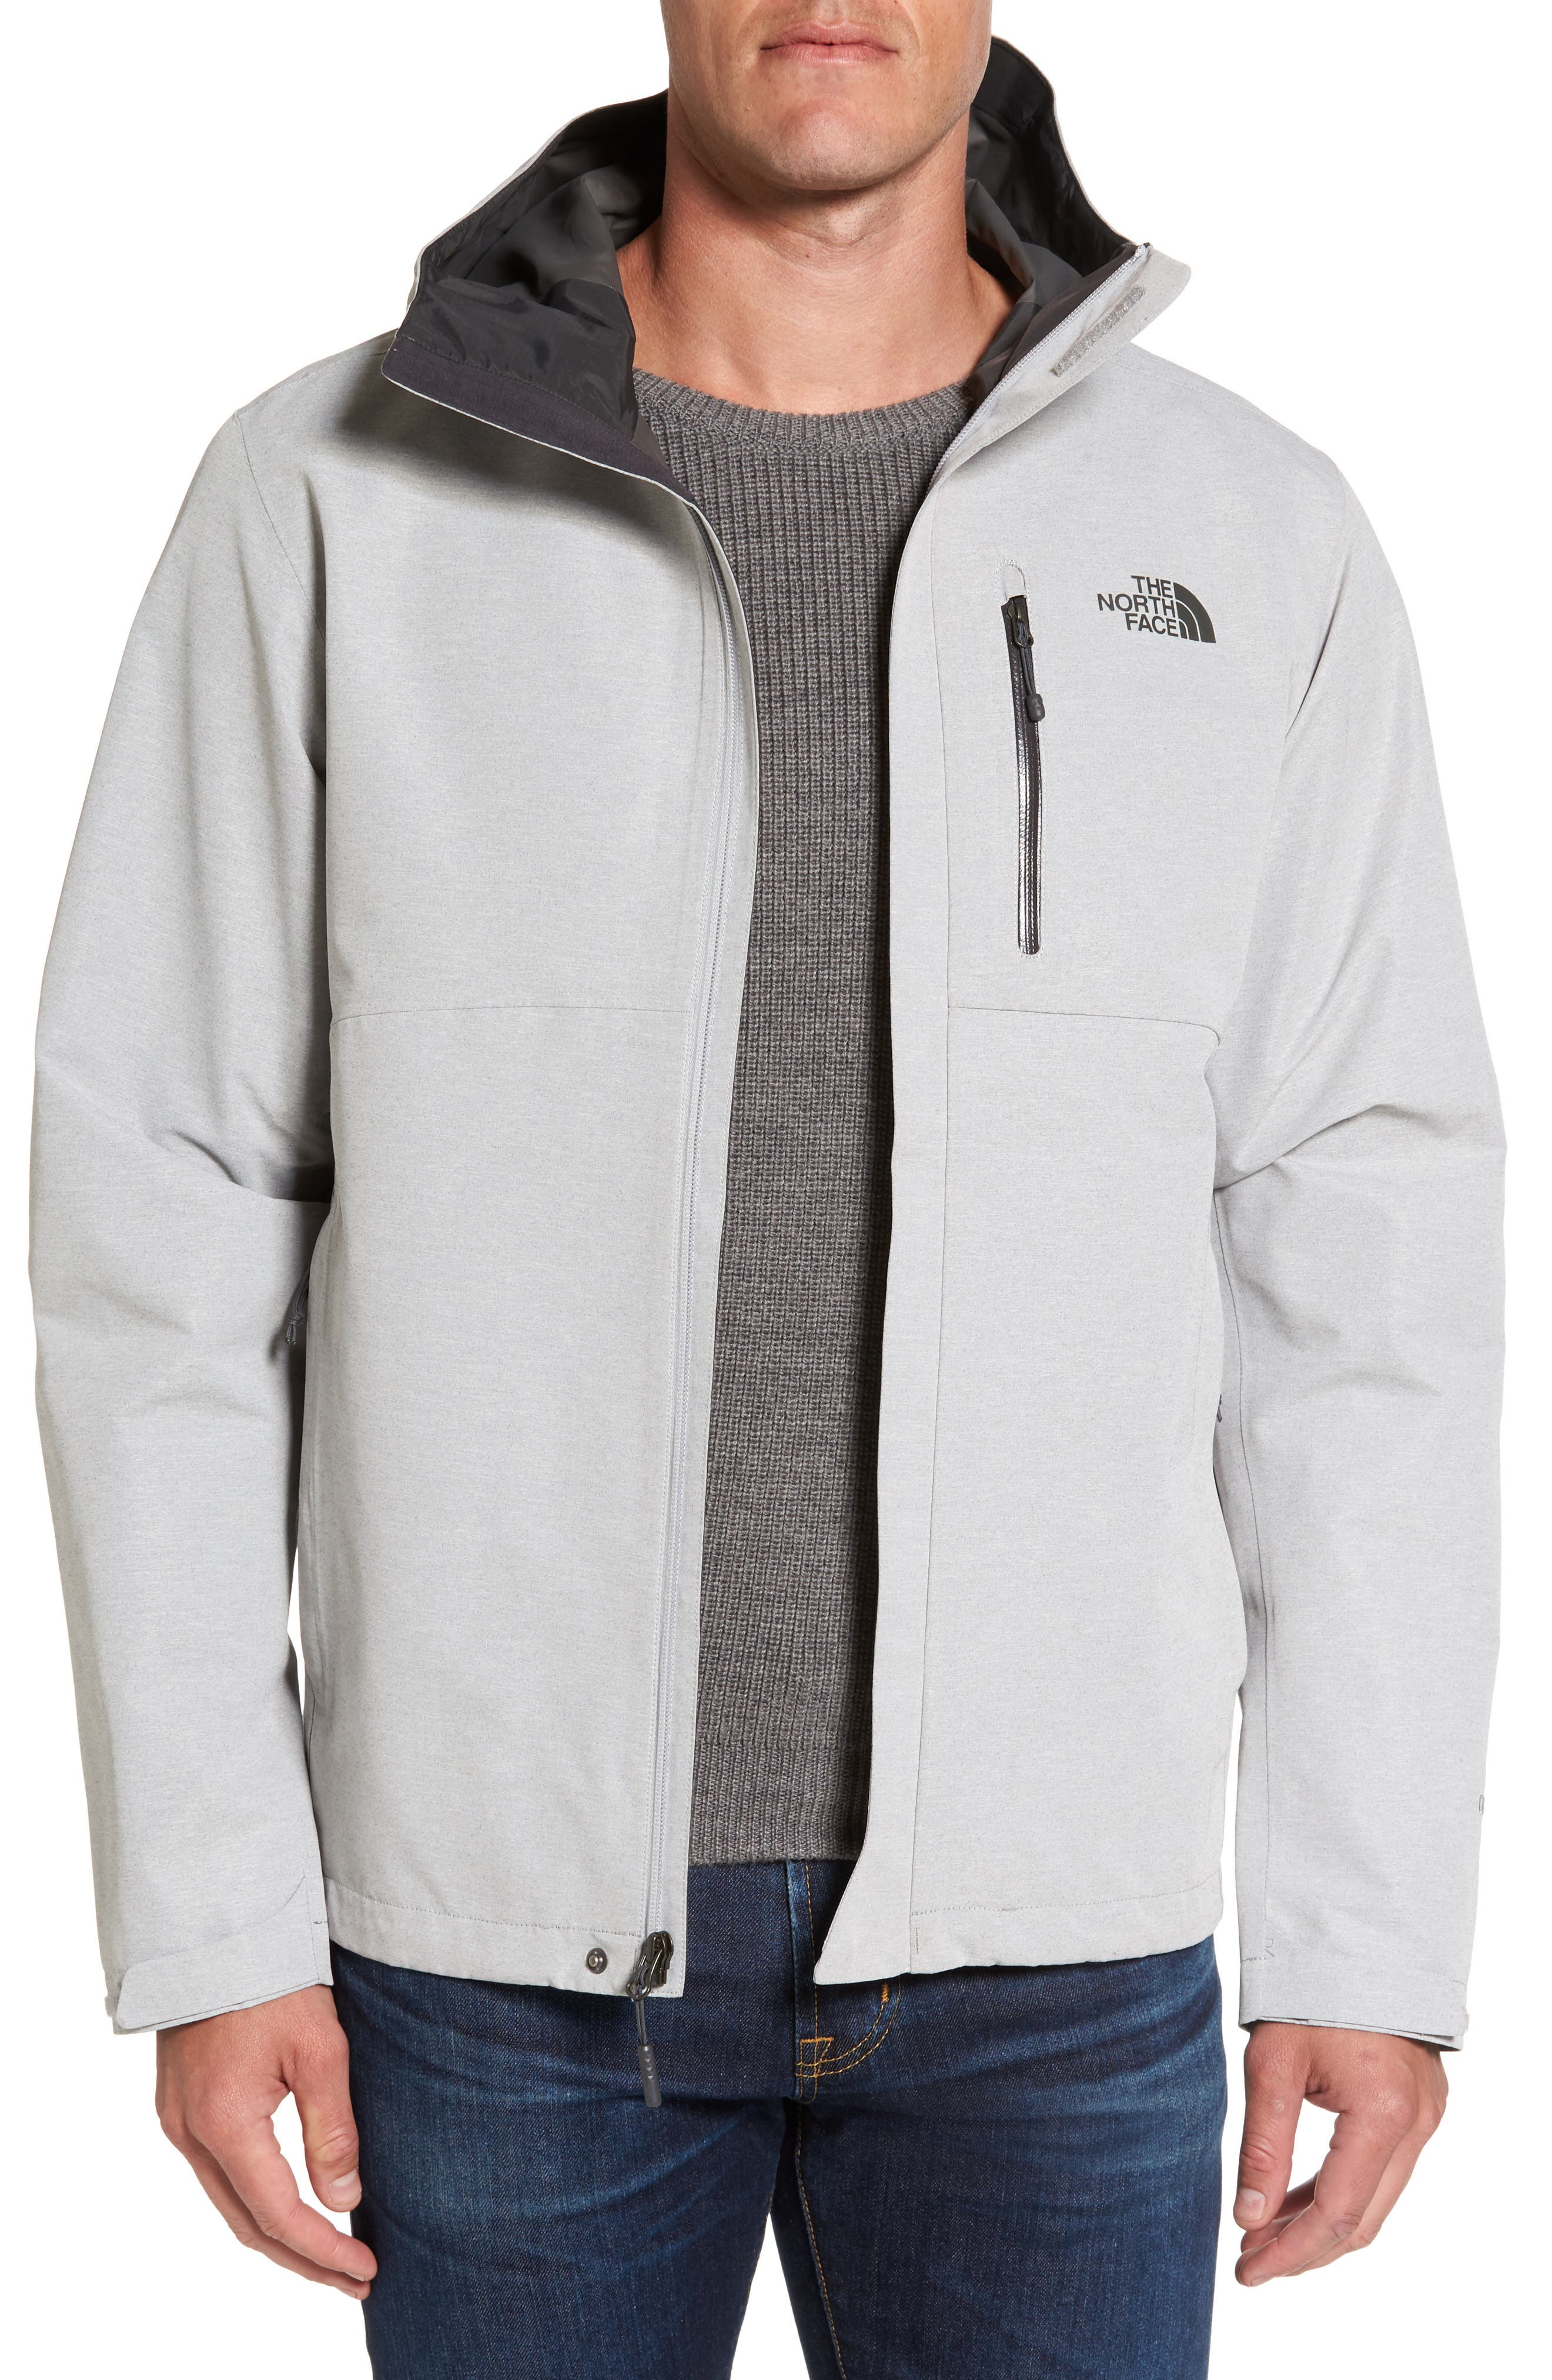 Alternate Image 1 Selected - The North Face Dryzzle Gore-Tex® PacLite Hooded Jacket